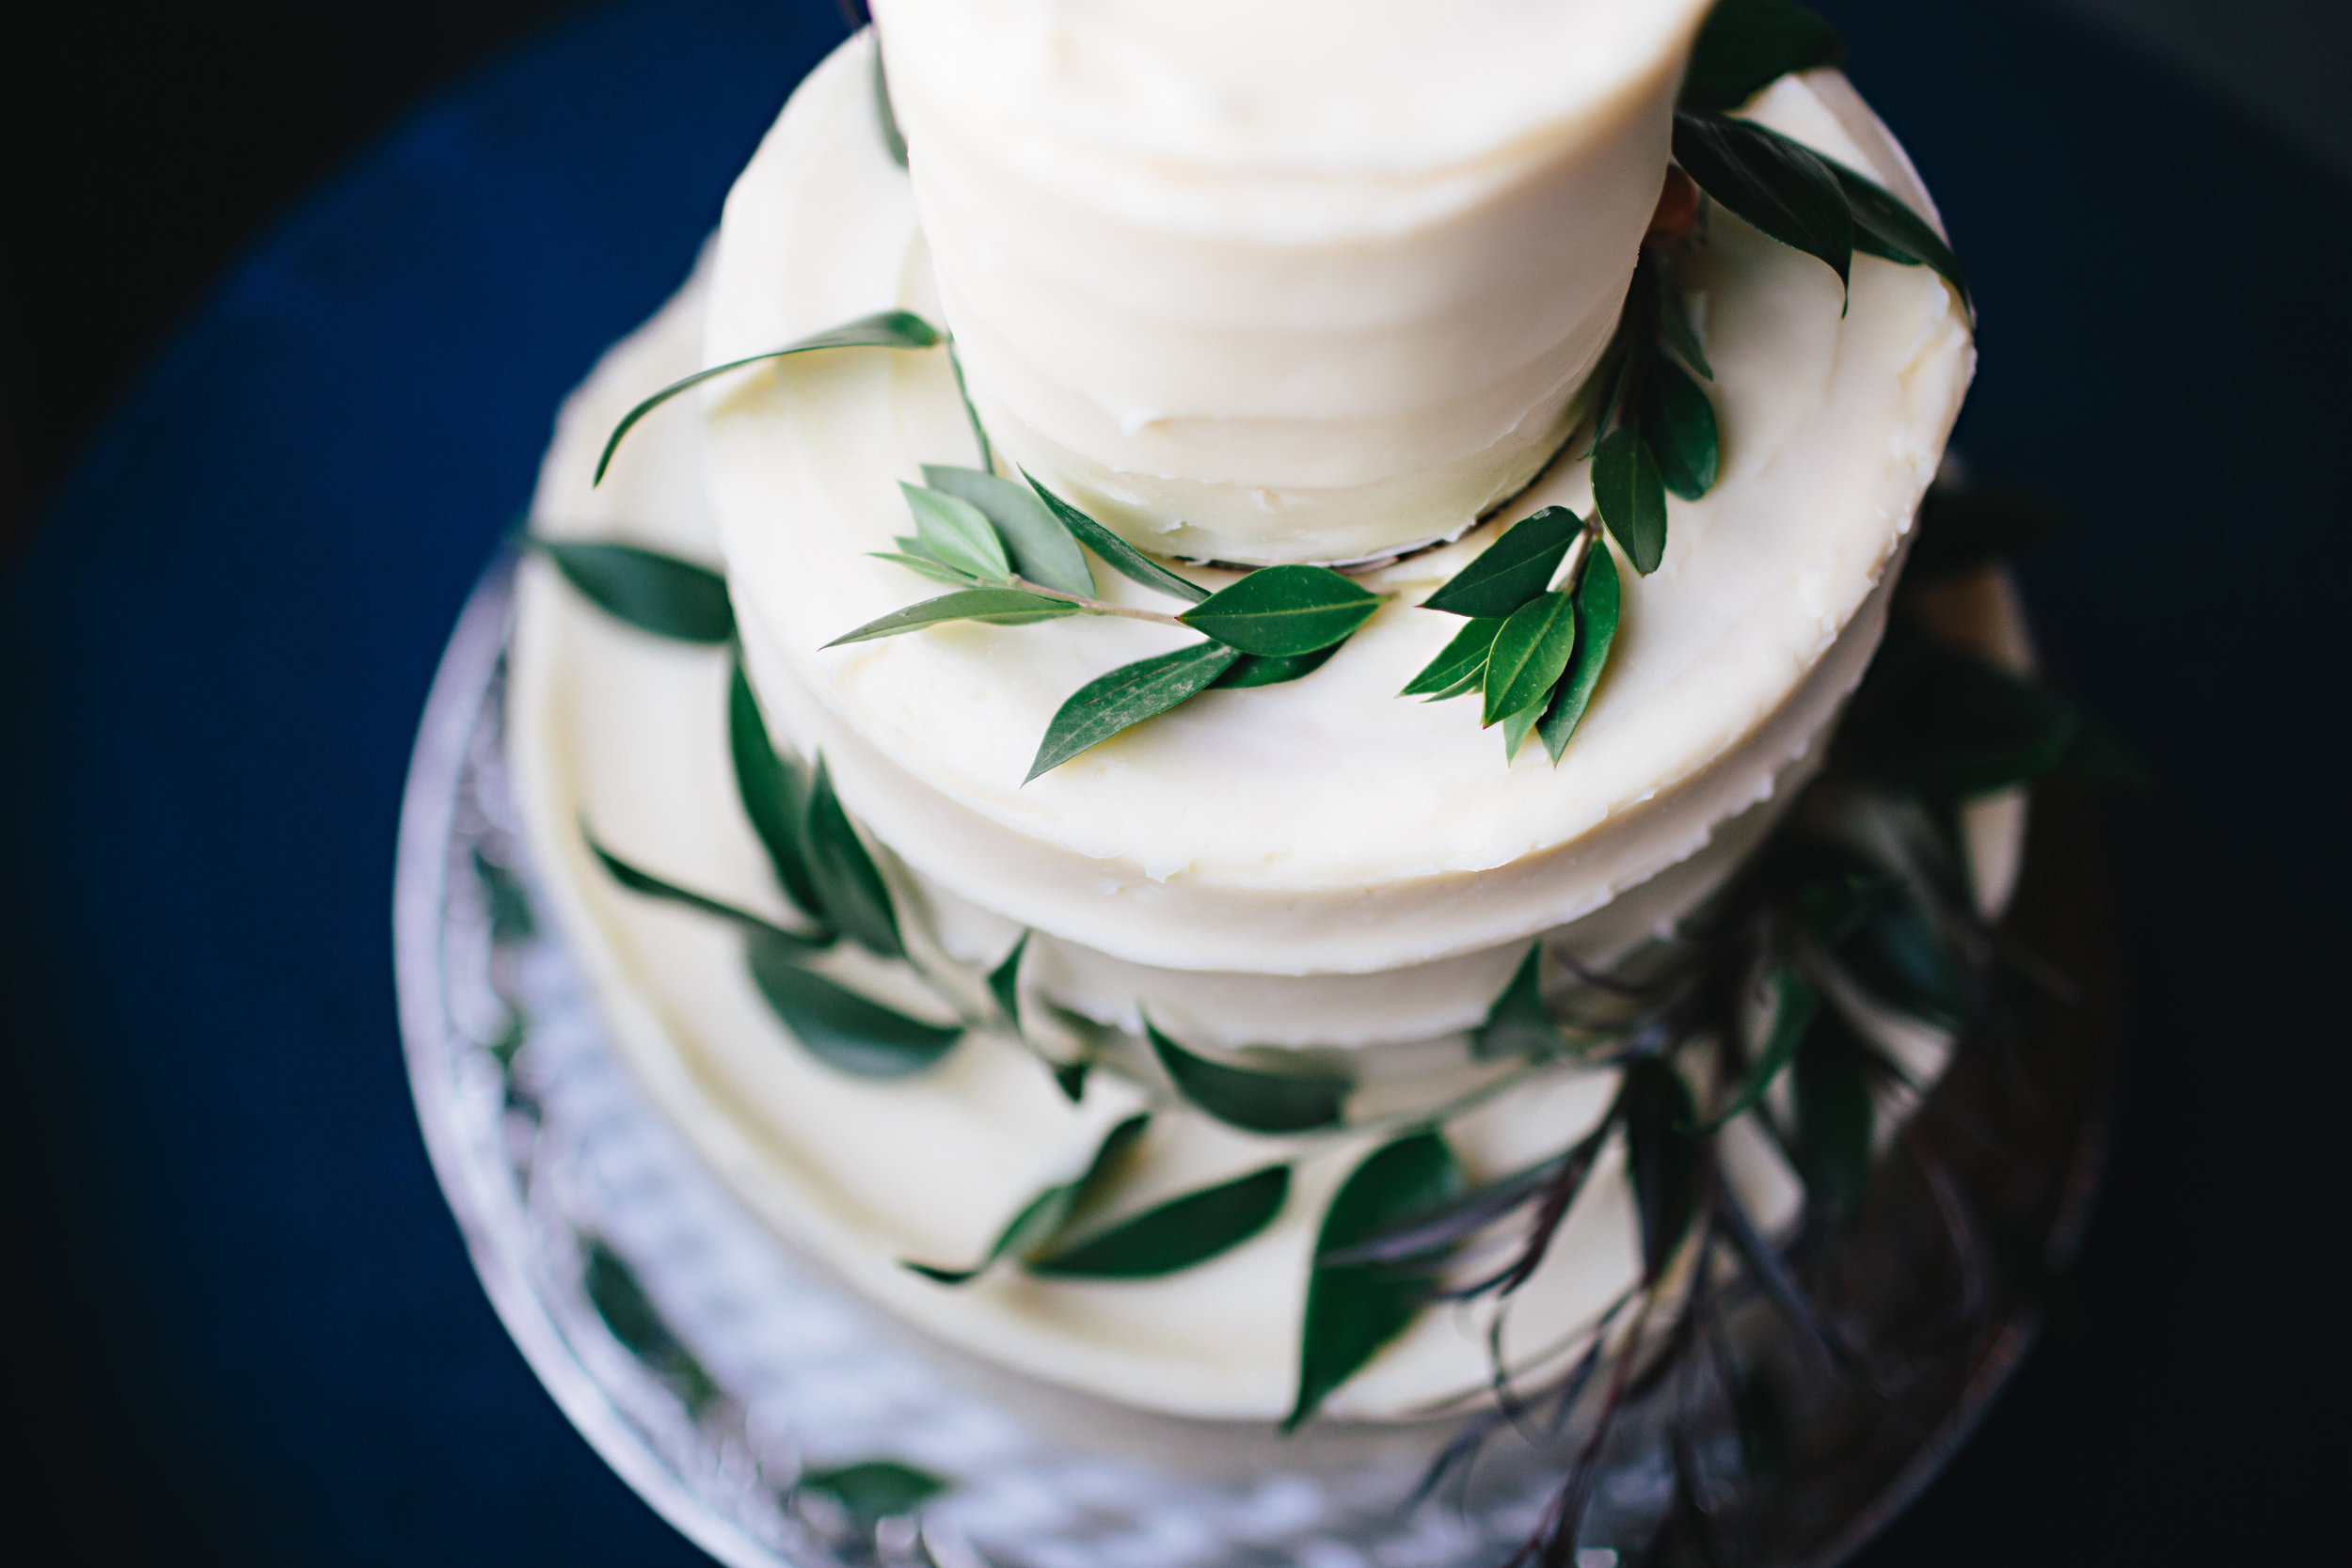 A gorgeous wedding cake decked out in greenery which tied into the simple and elegant centerpieces.